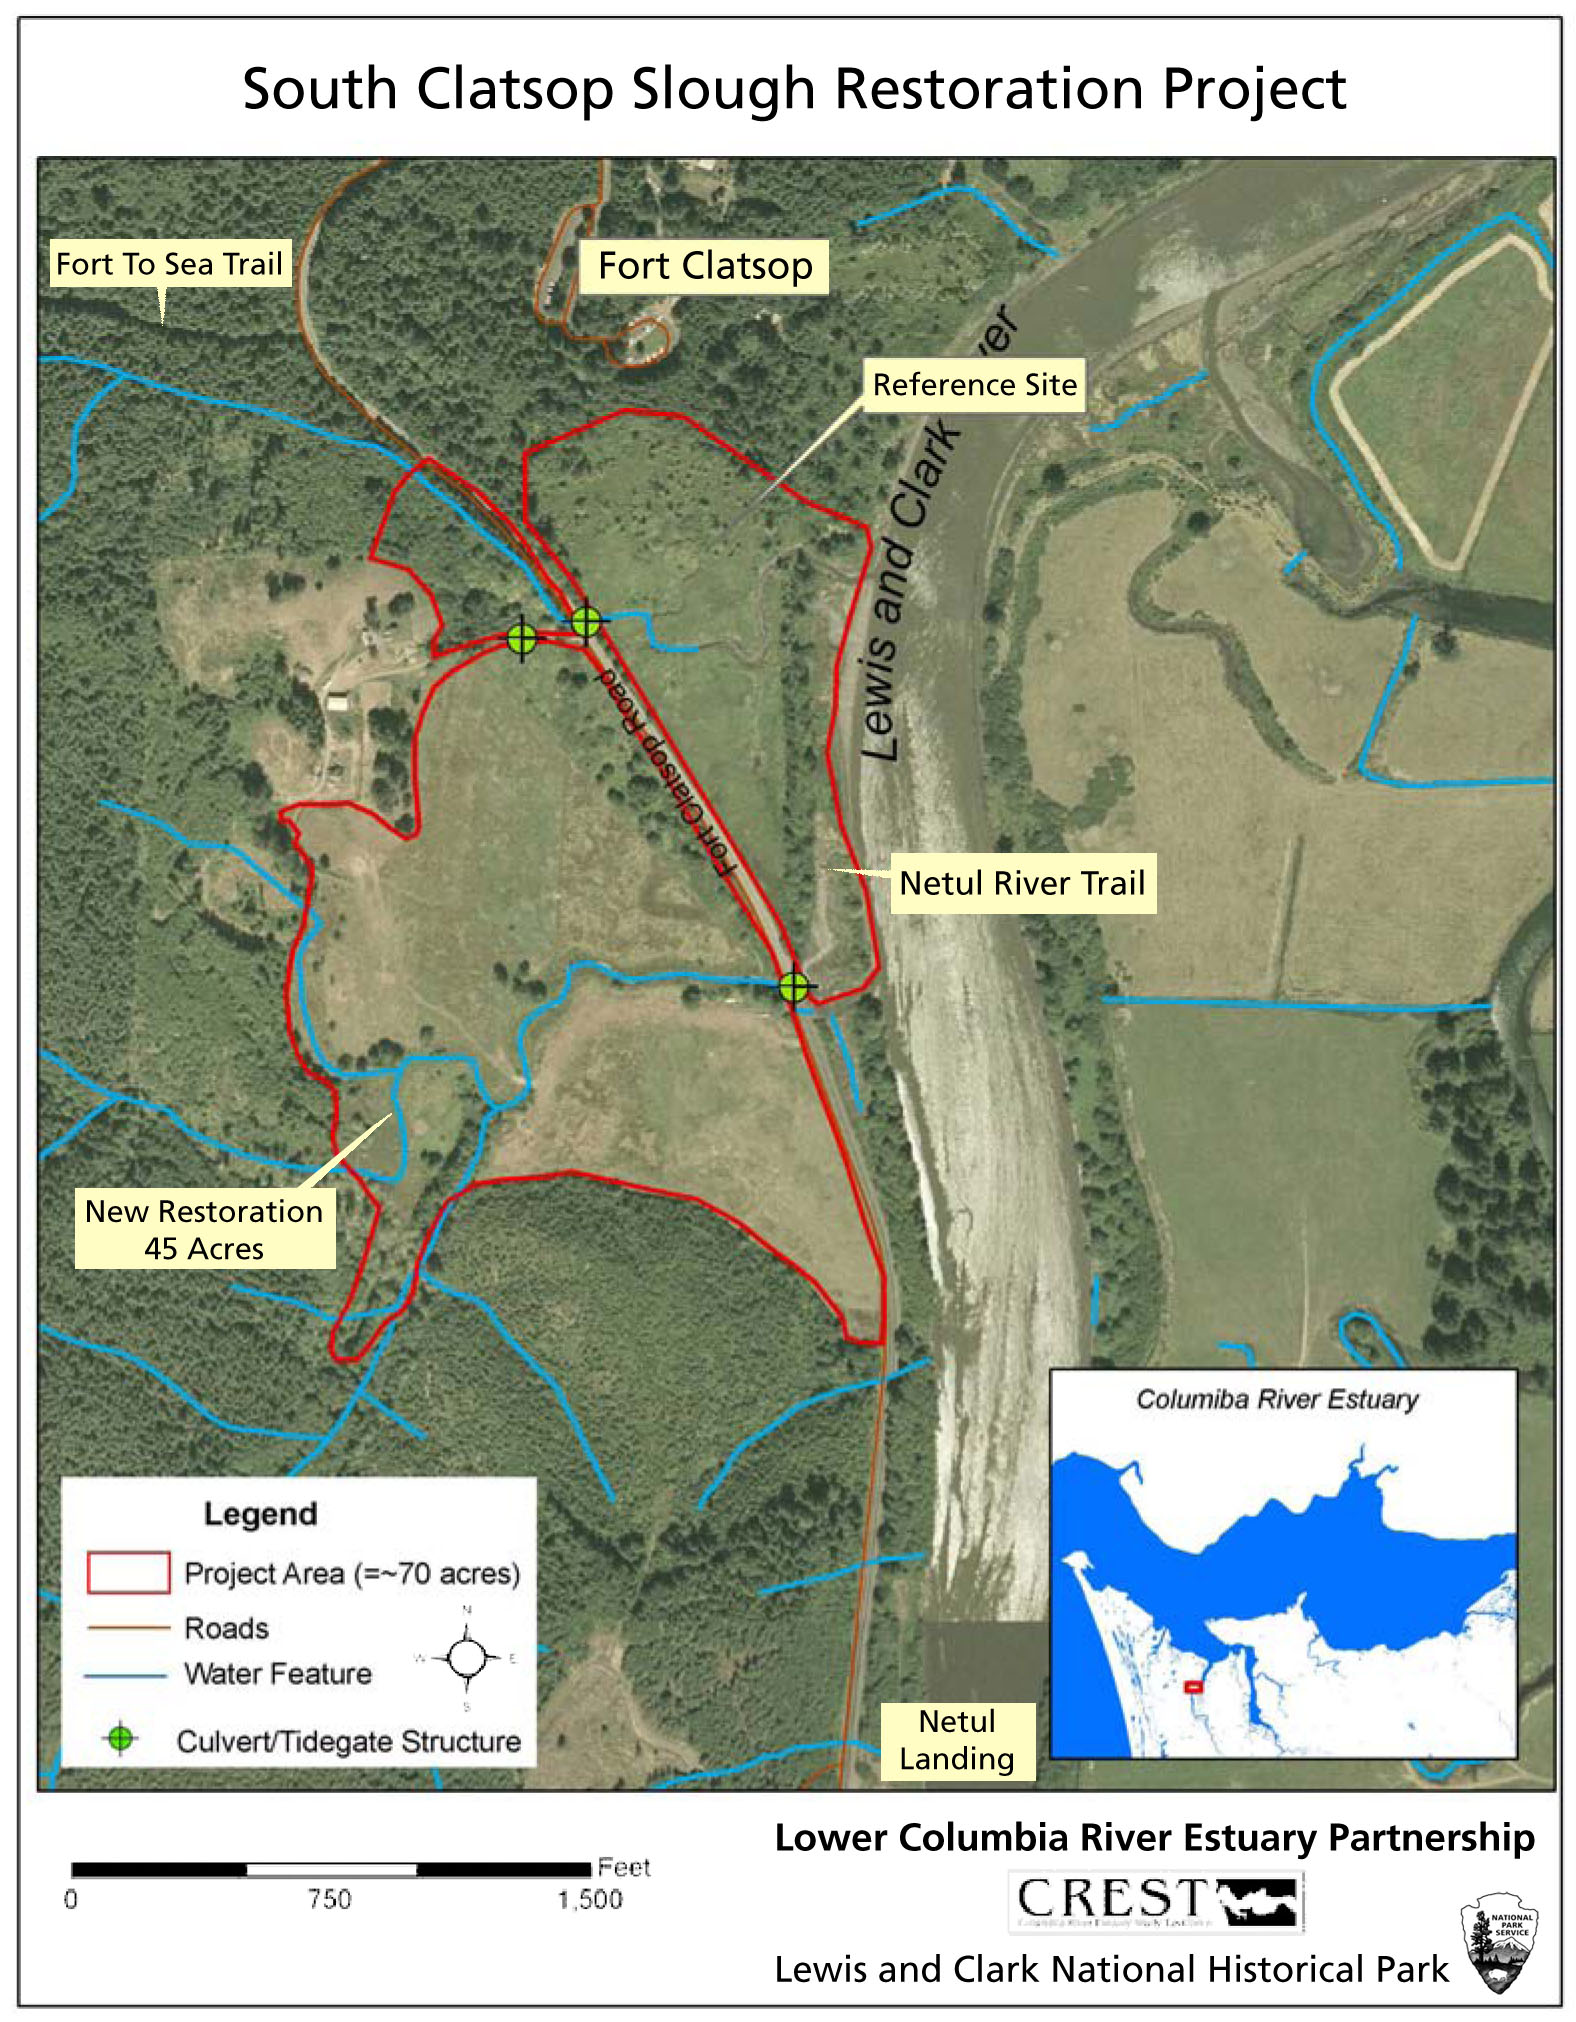 South Clatsop Slough Restoration Project Lewis And Clark - Fort clatsop on map of us